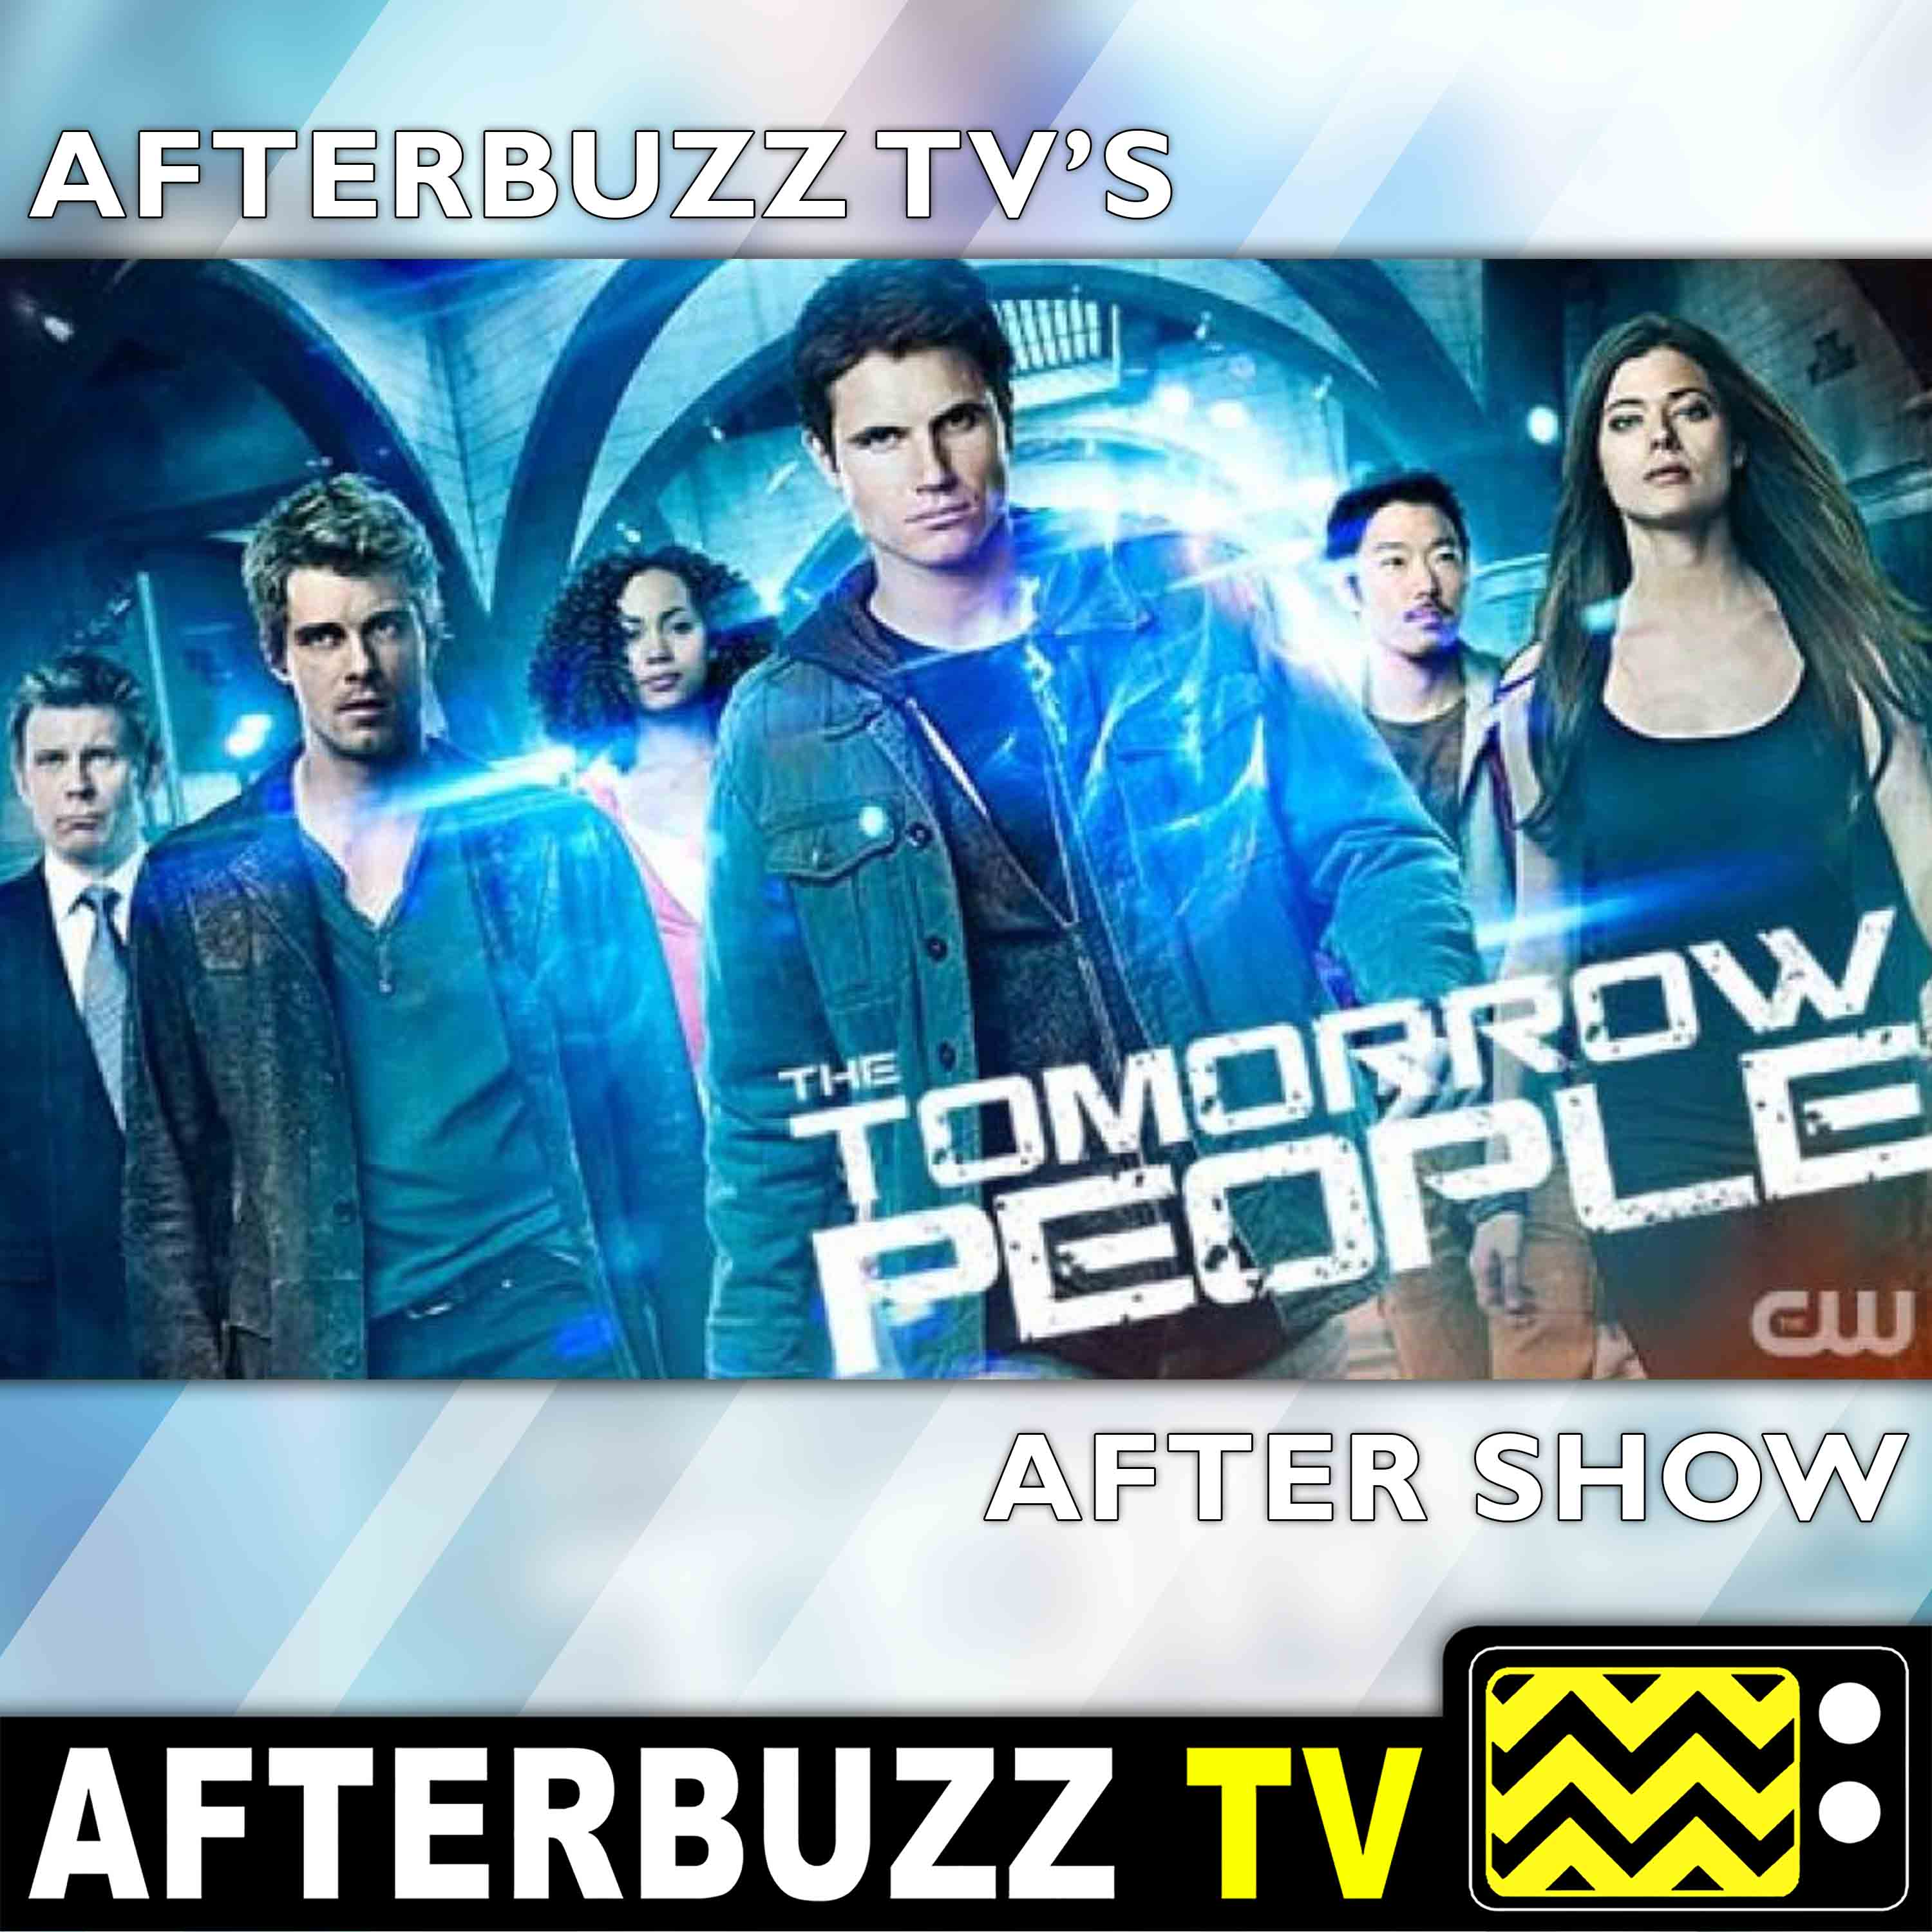 The Tomorrow People Reviews and After Show